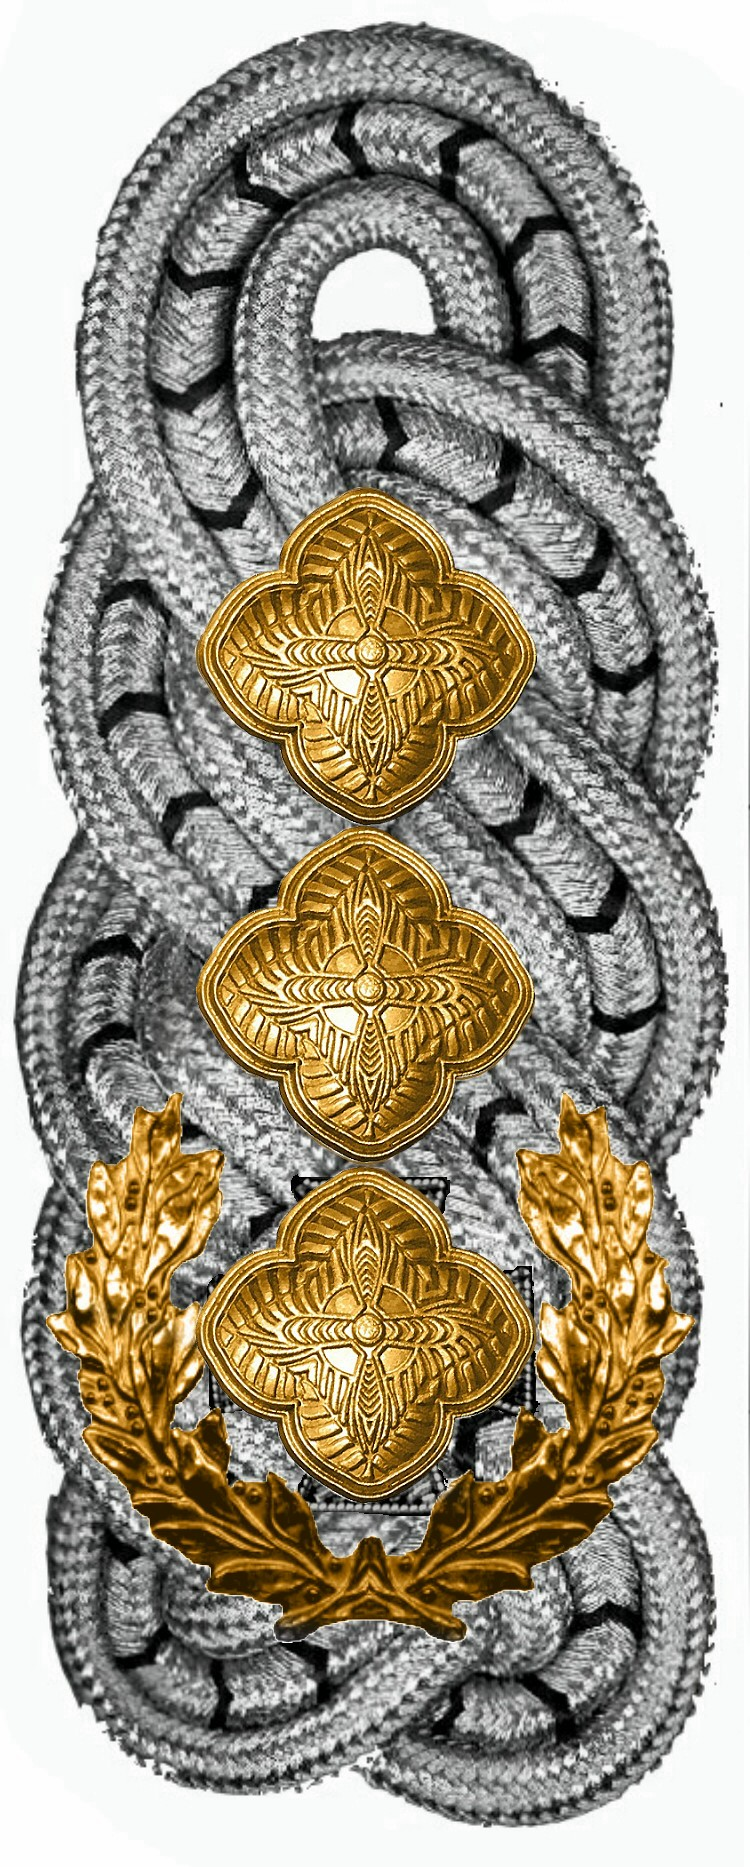 gala-1st-sergeant-major-lu